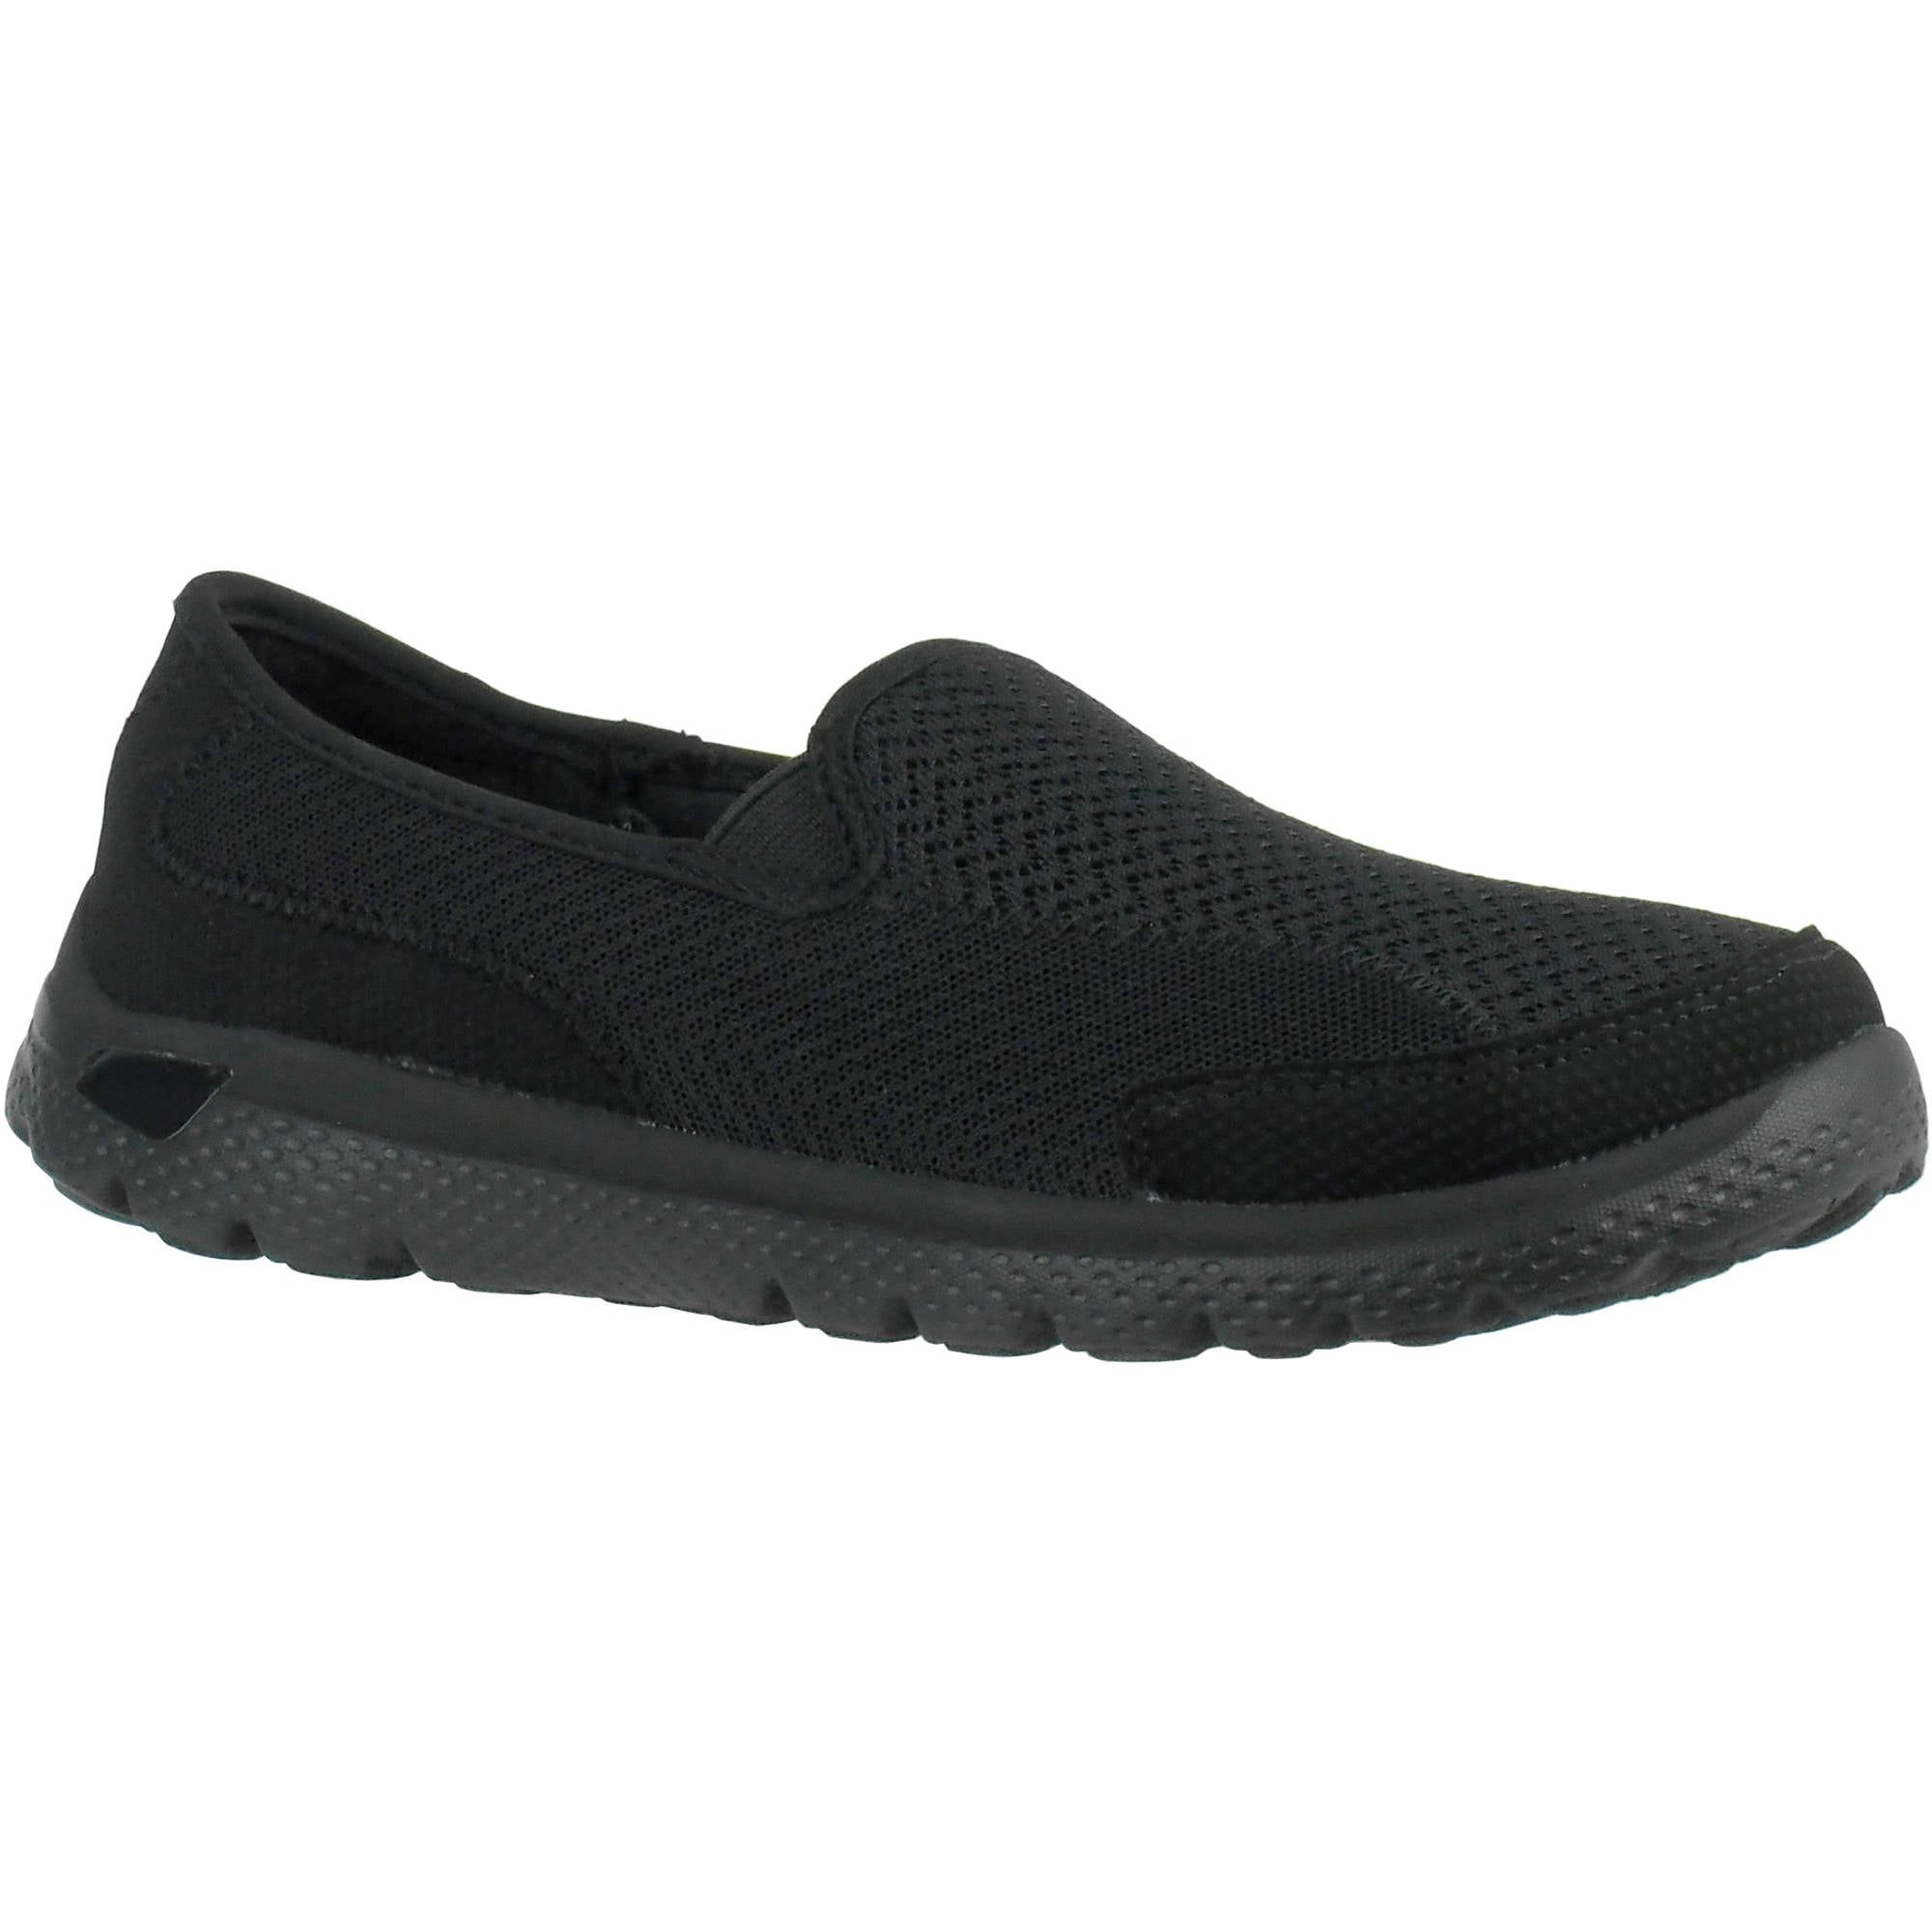 Walmart Womens Memory Foam Shoes